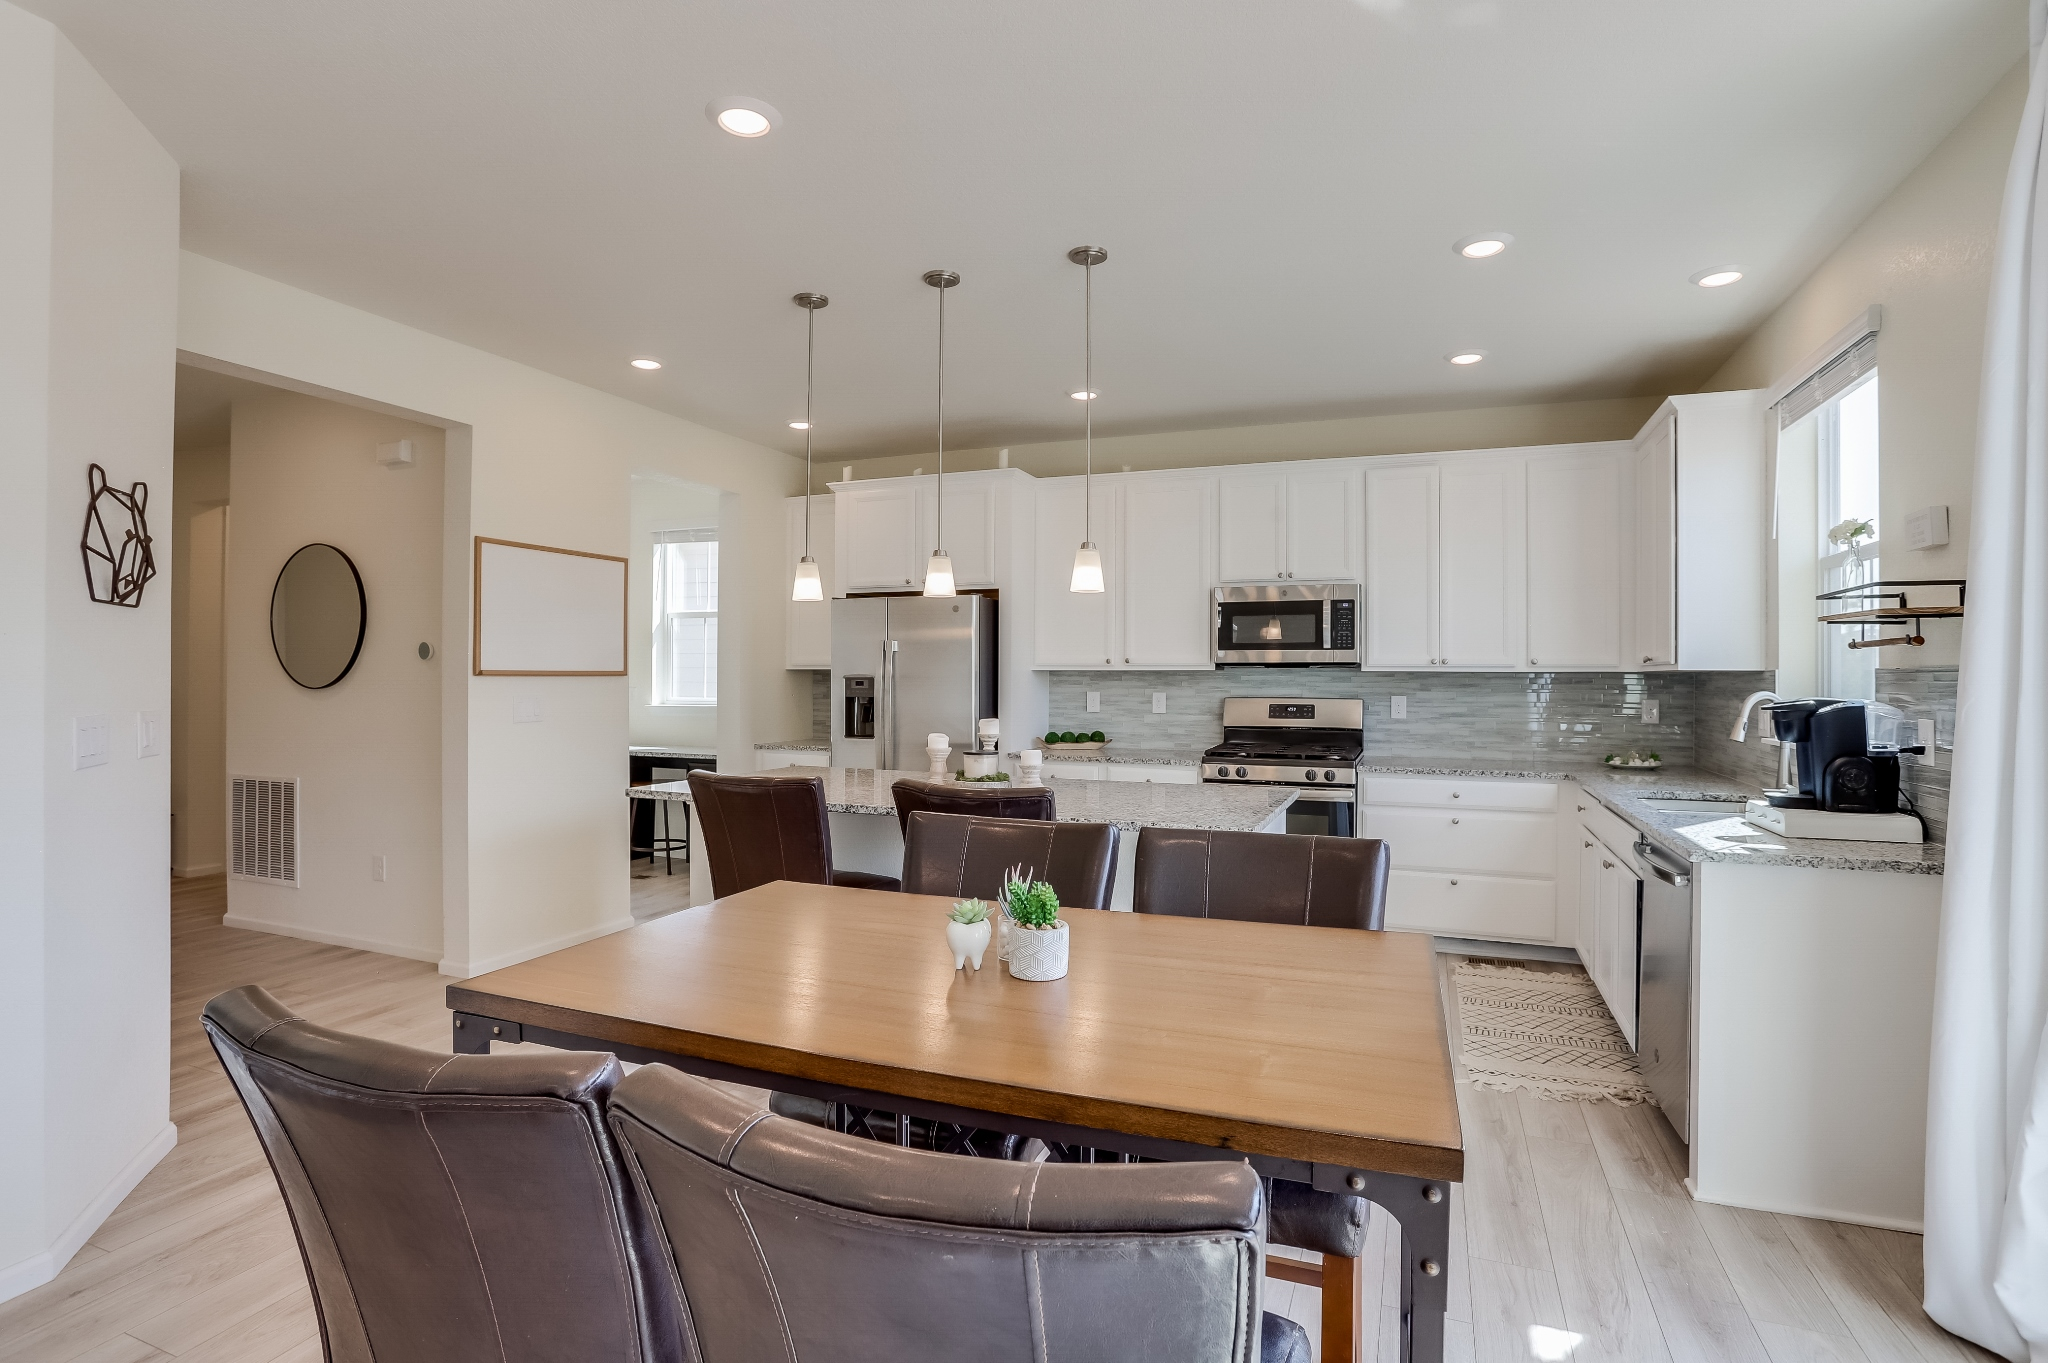 REAL ESTATE LISTING: 12813 Clearview St Firestone Dining Area